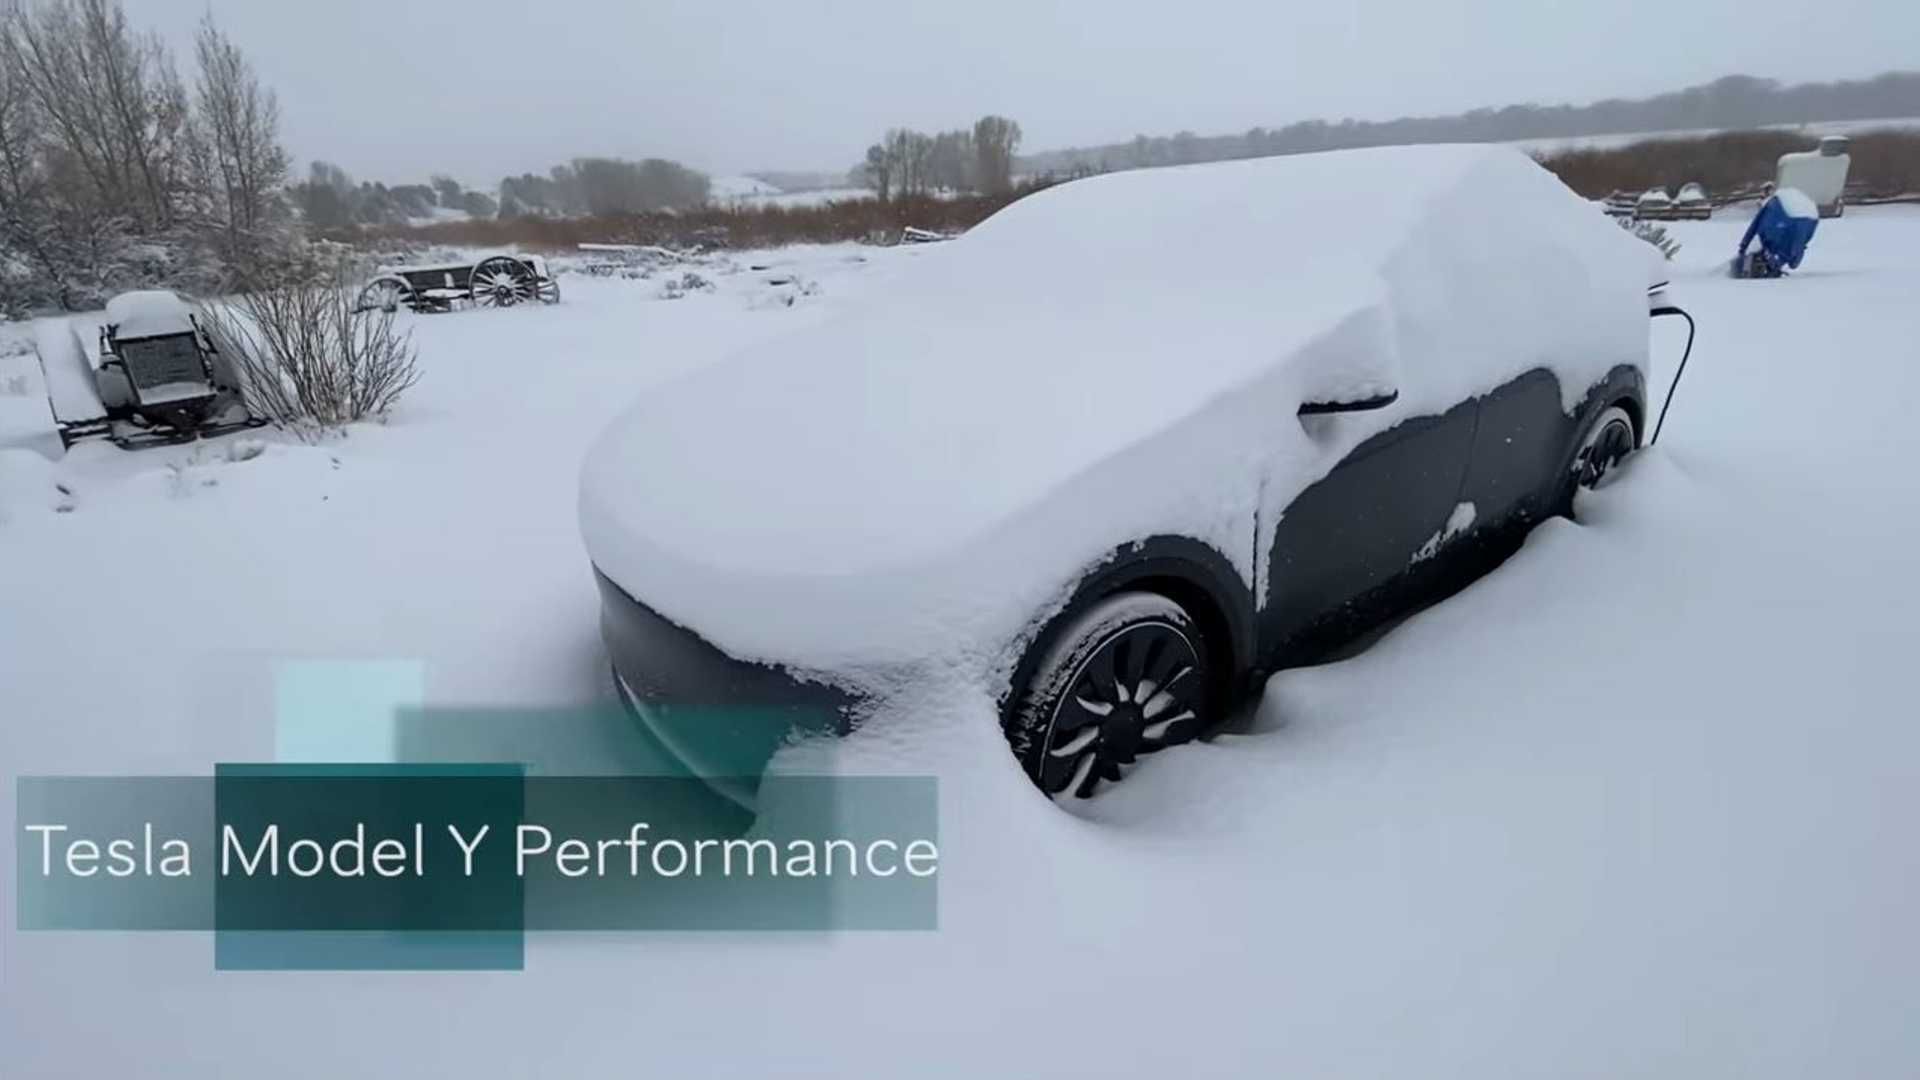 Tesla Model Y Performance: How Does It Fare In 11 Inches Of Snow?